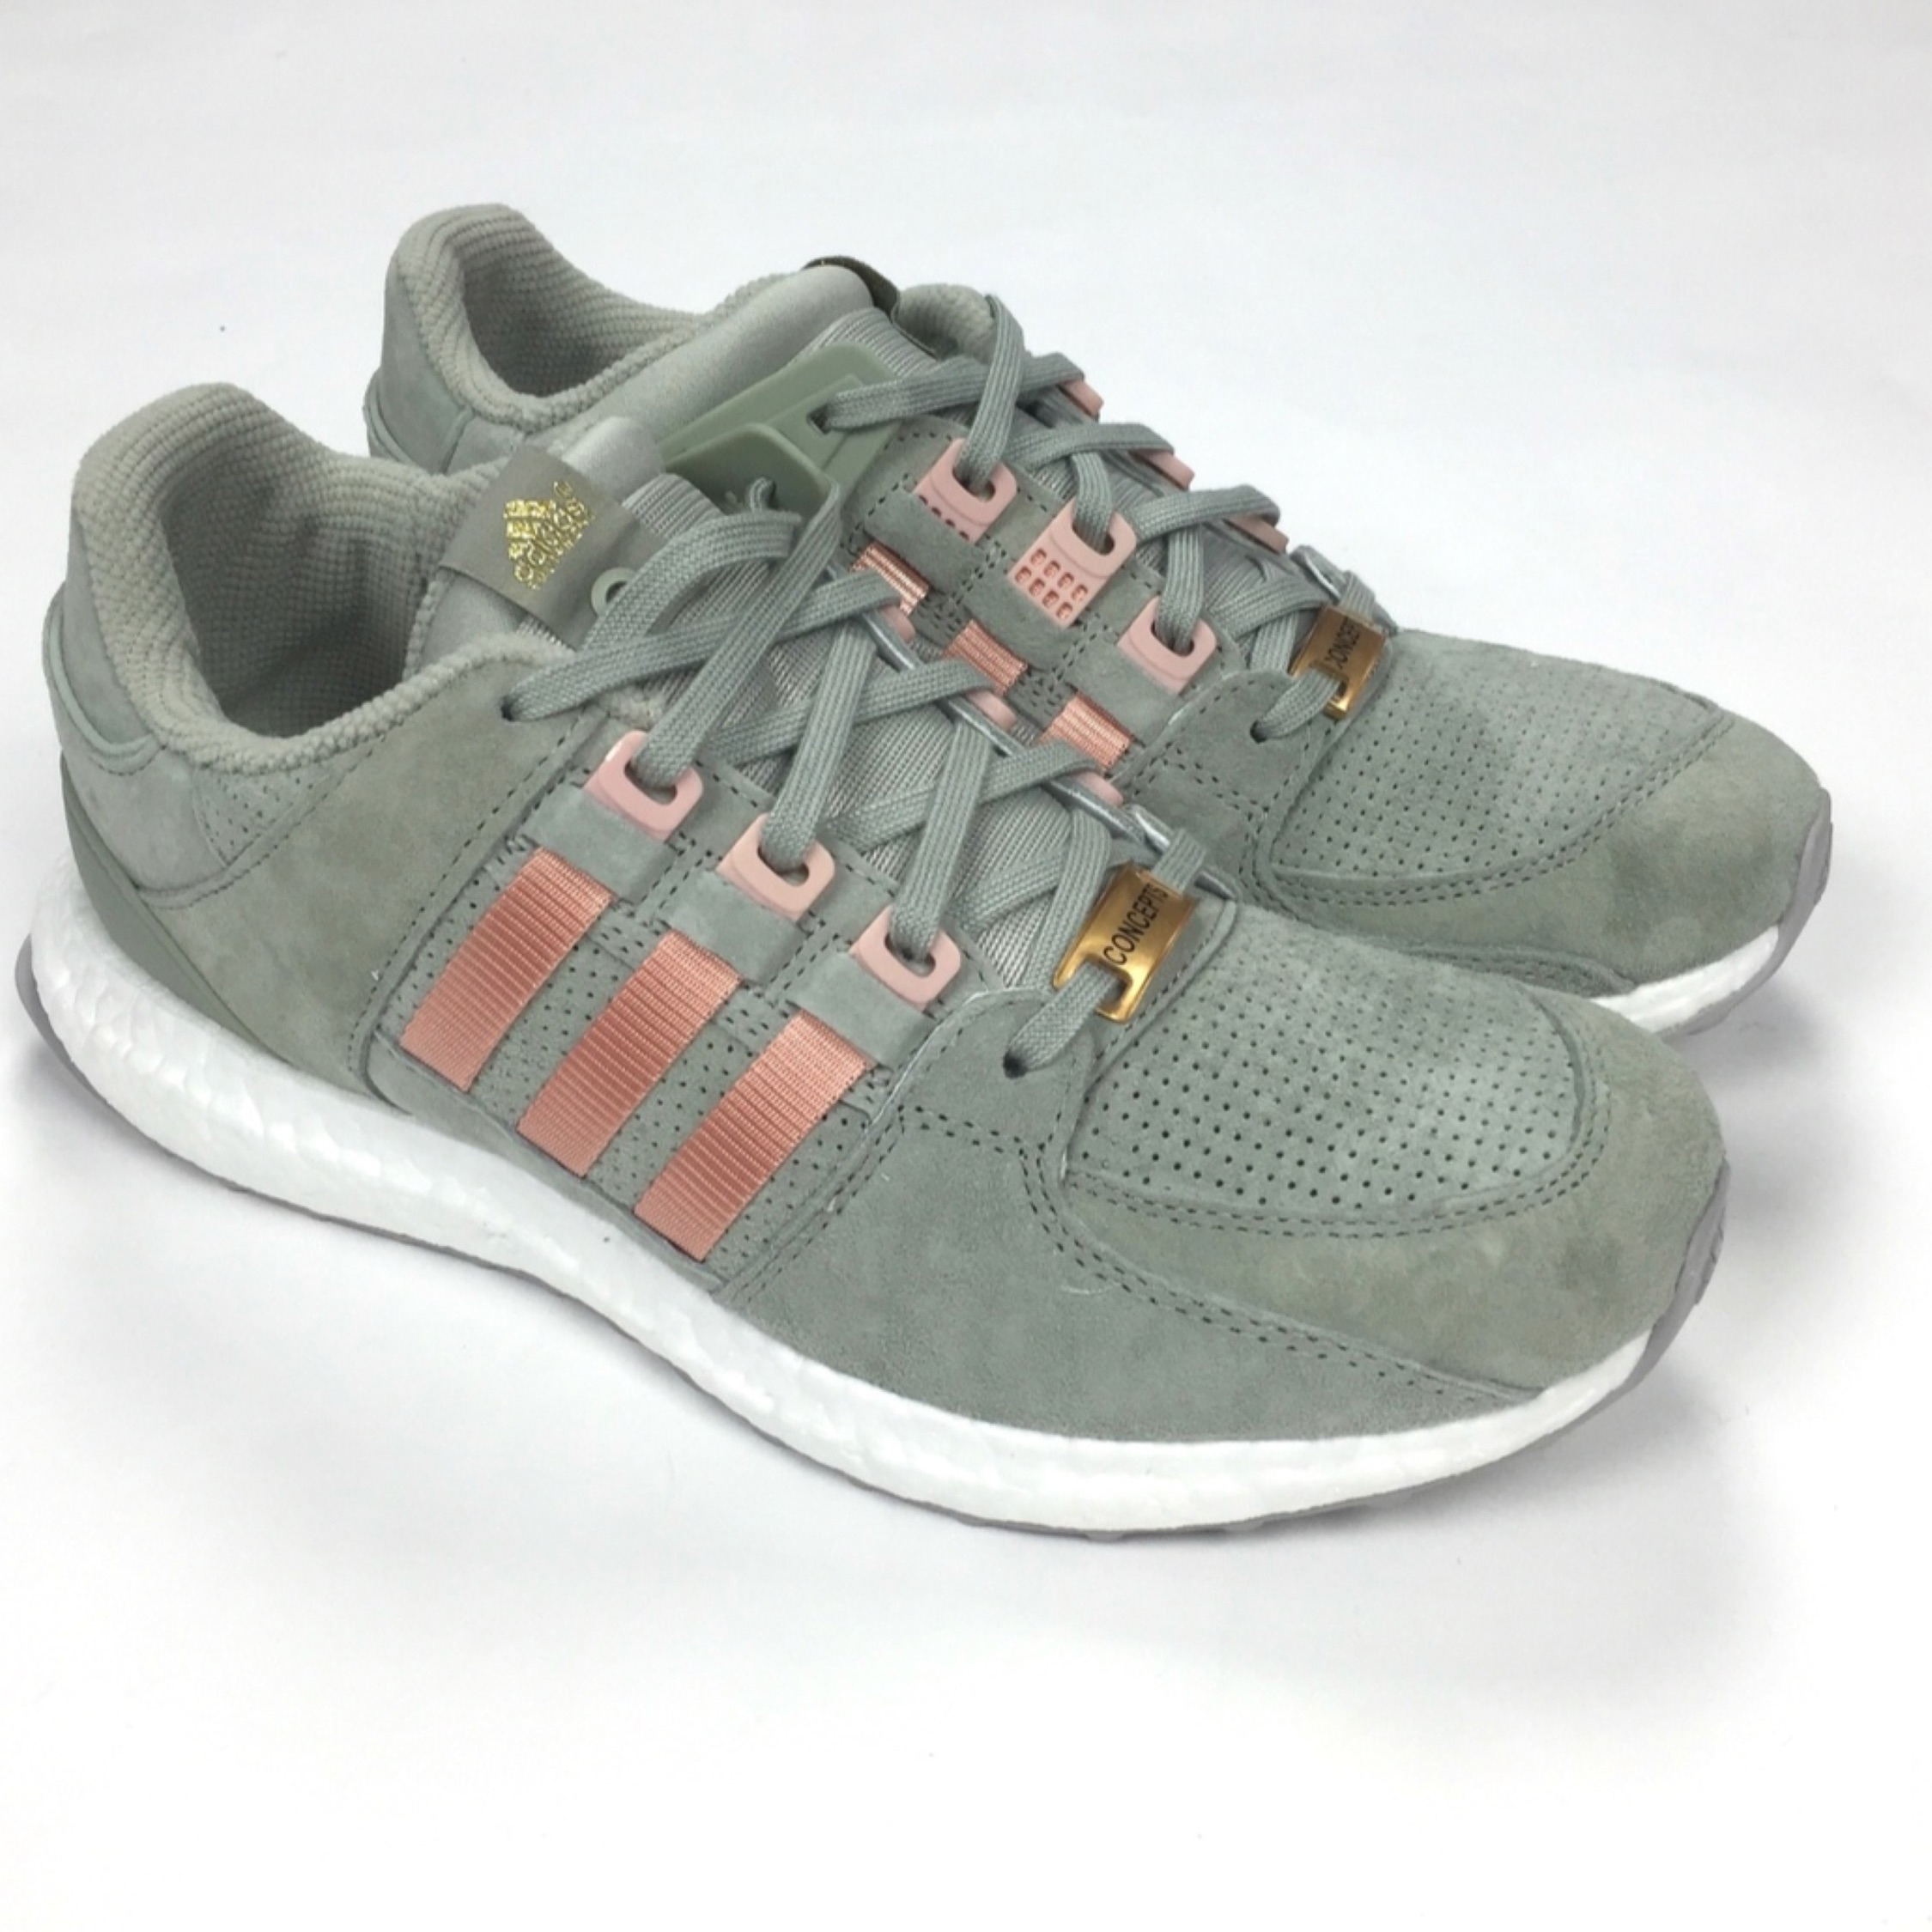 finest selection 28ac2 e346f Adidas X Concepts Grey Eqt Support Ultra Boost